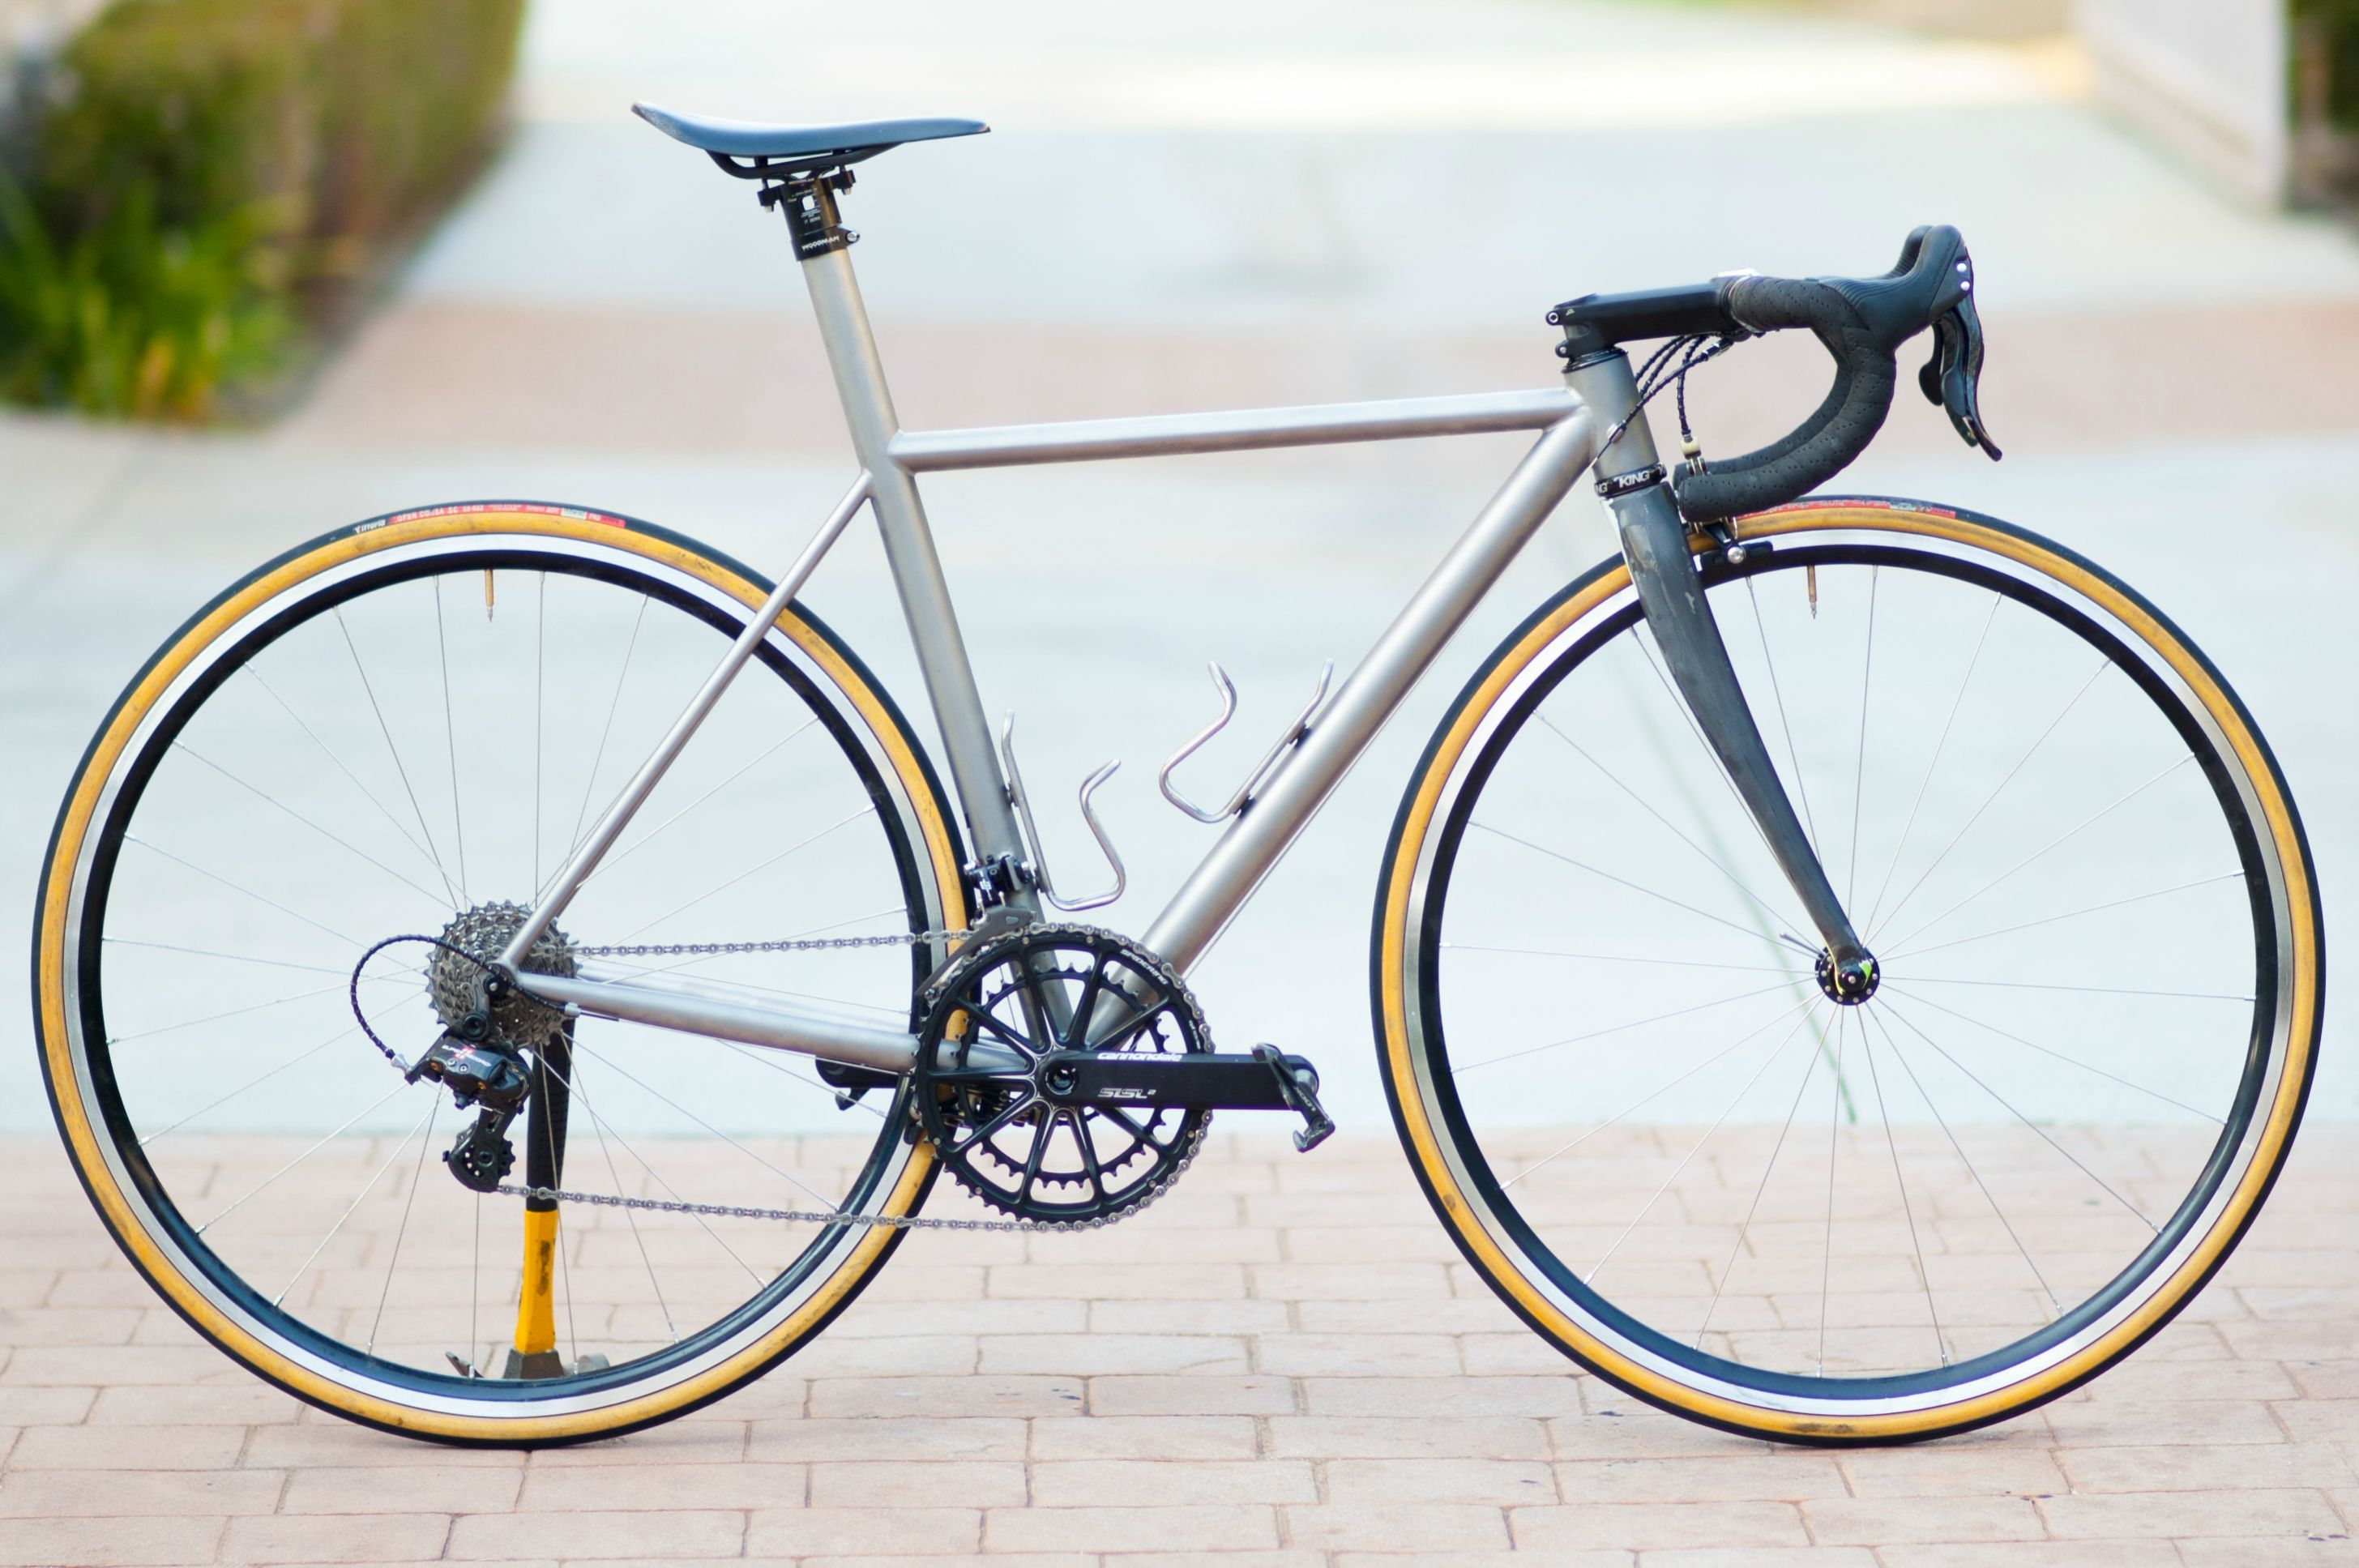 Legend IL Re Titanium | Titanium | Pinterest | Bicycling and Cycling